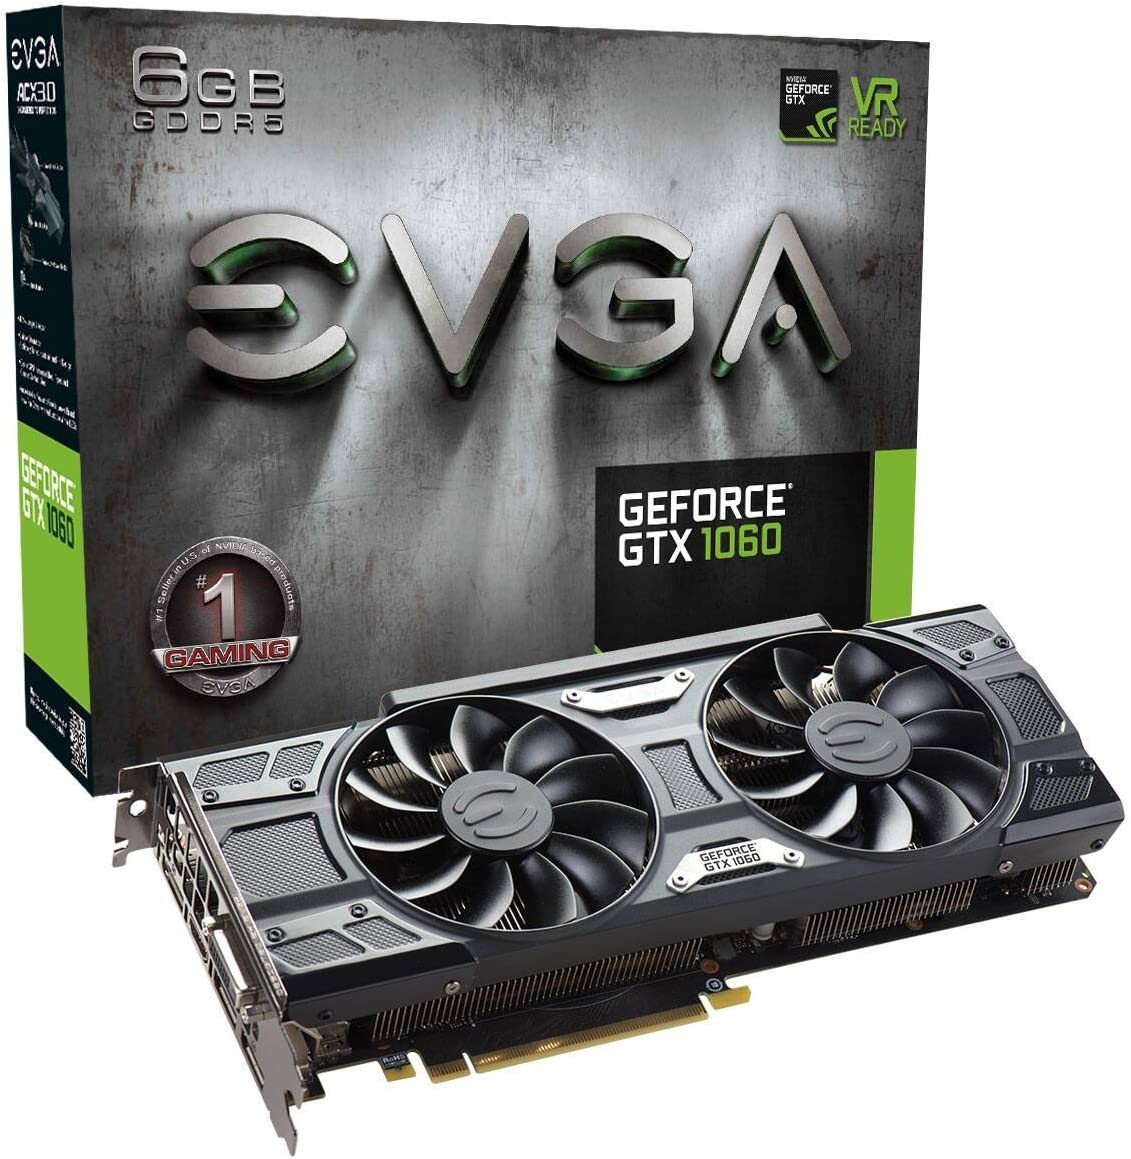 EVGA GeForce GTX 1060 Gaming